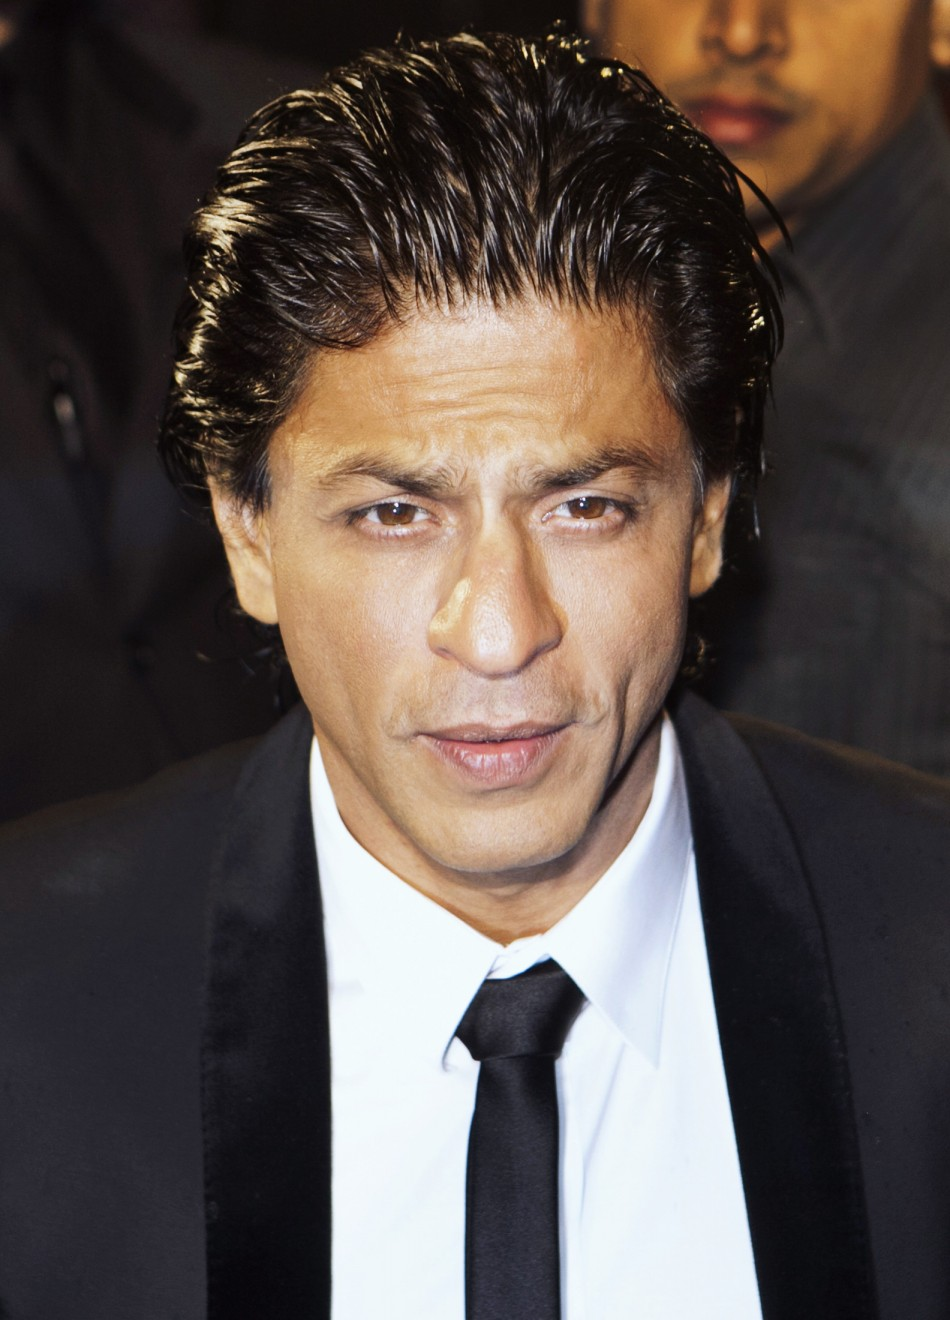 srk hair style ra one when s shah rukh khan takes 8935